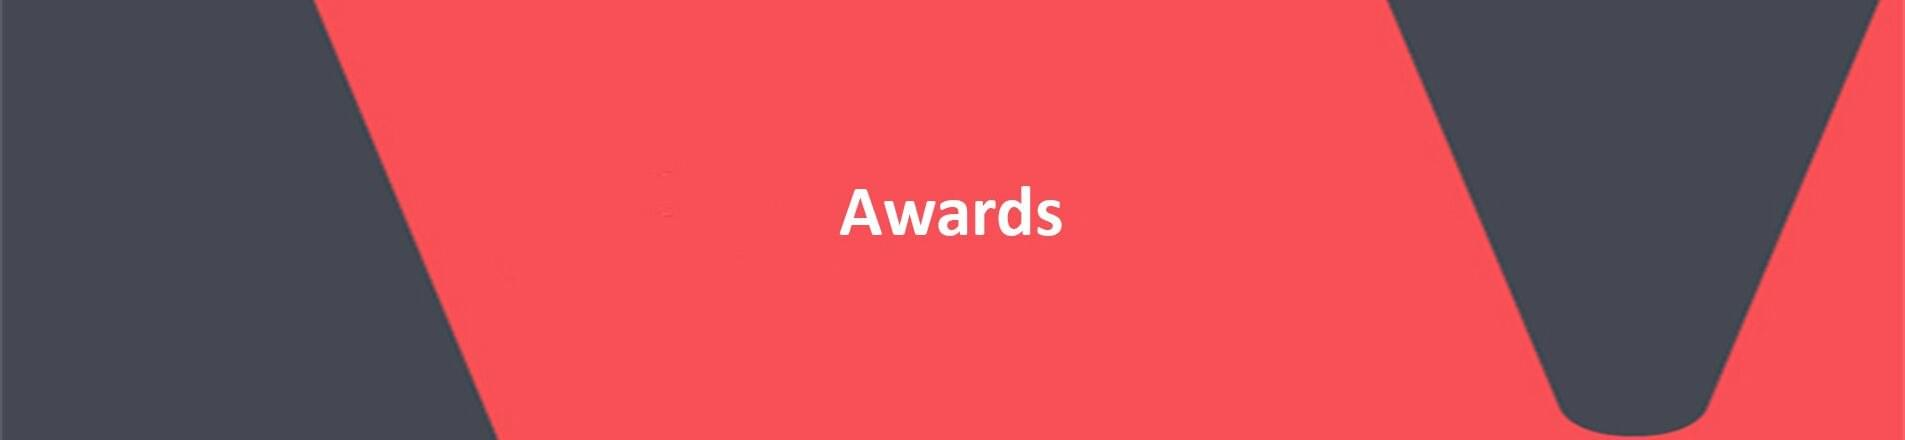 The word 'Award' on red VERCIDA background